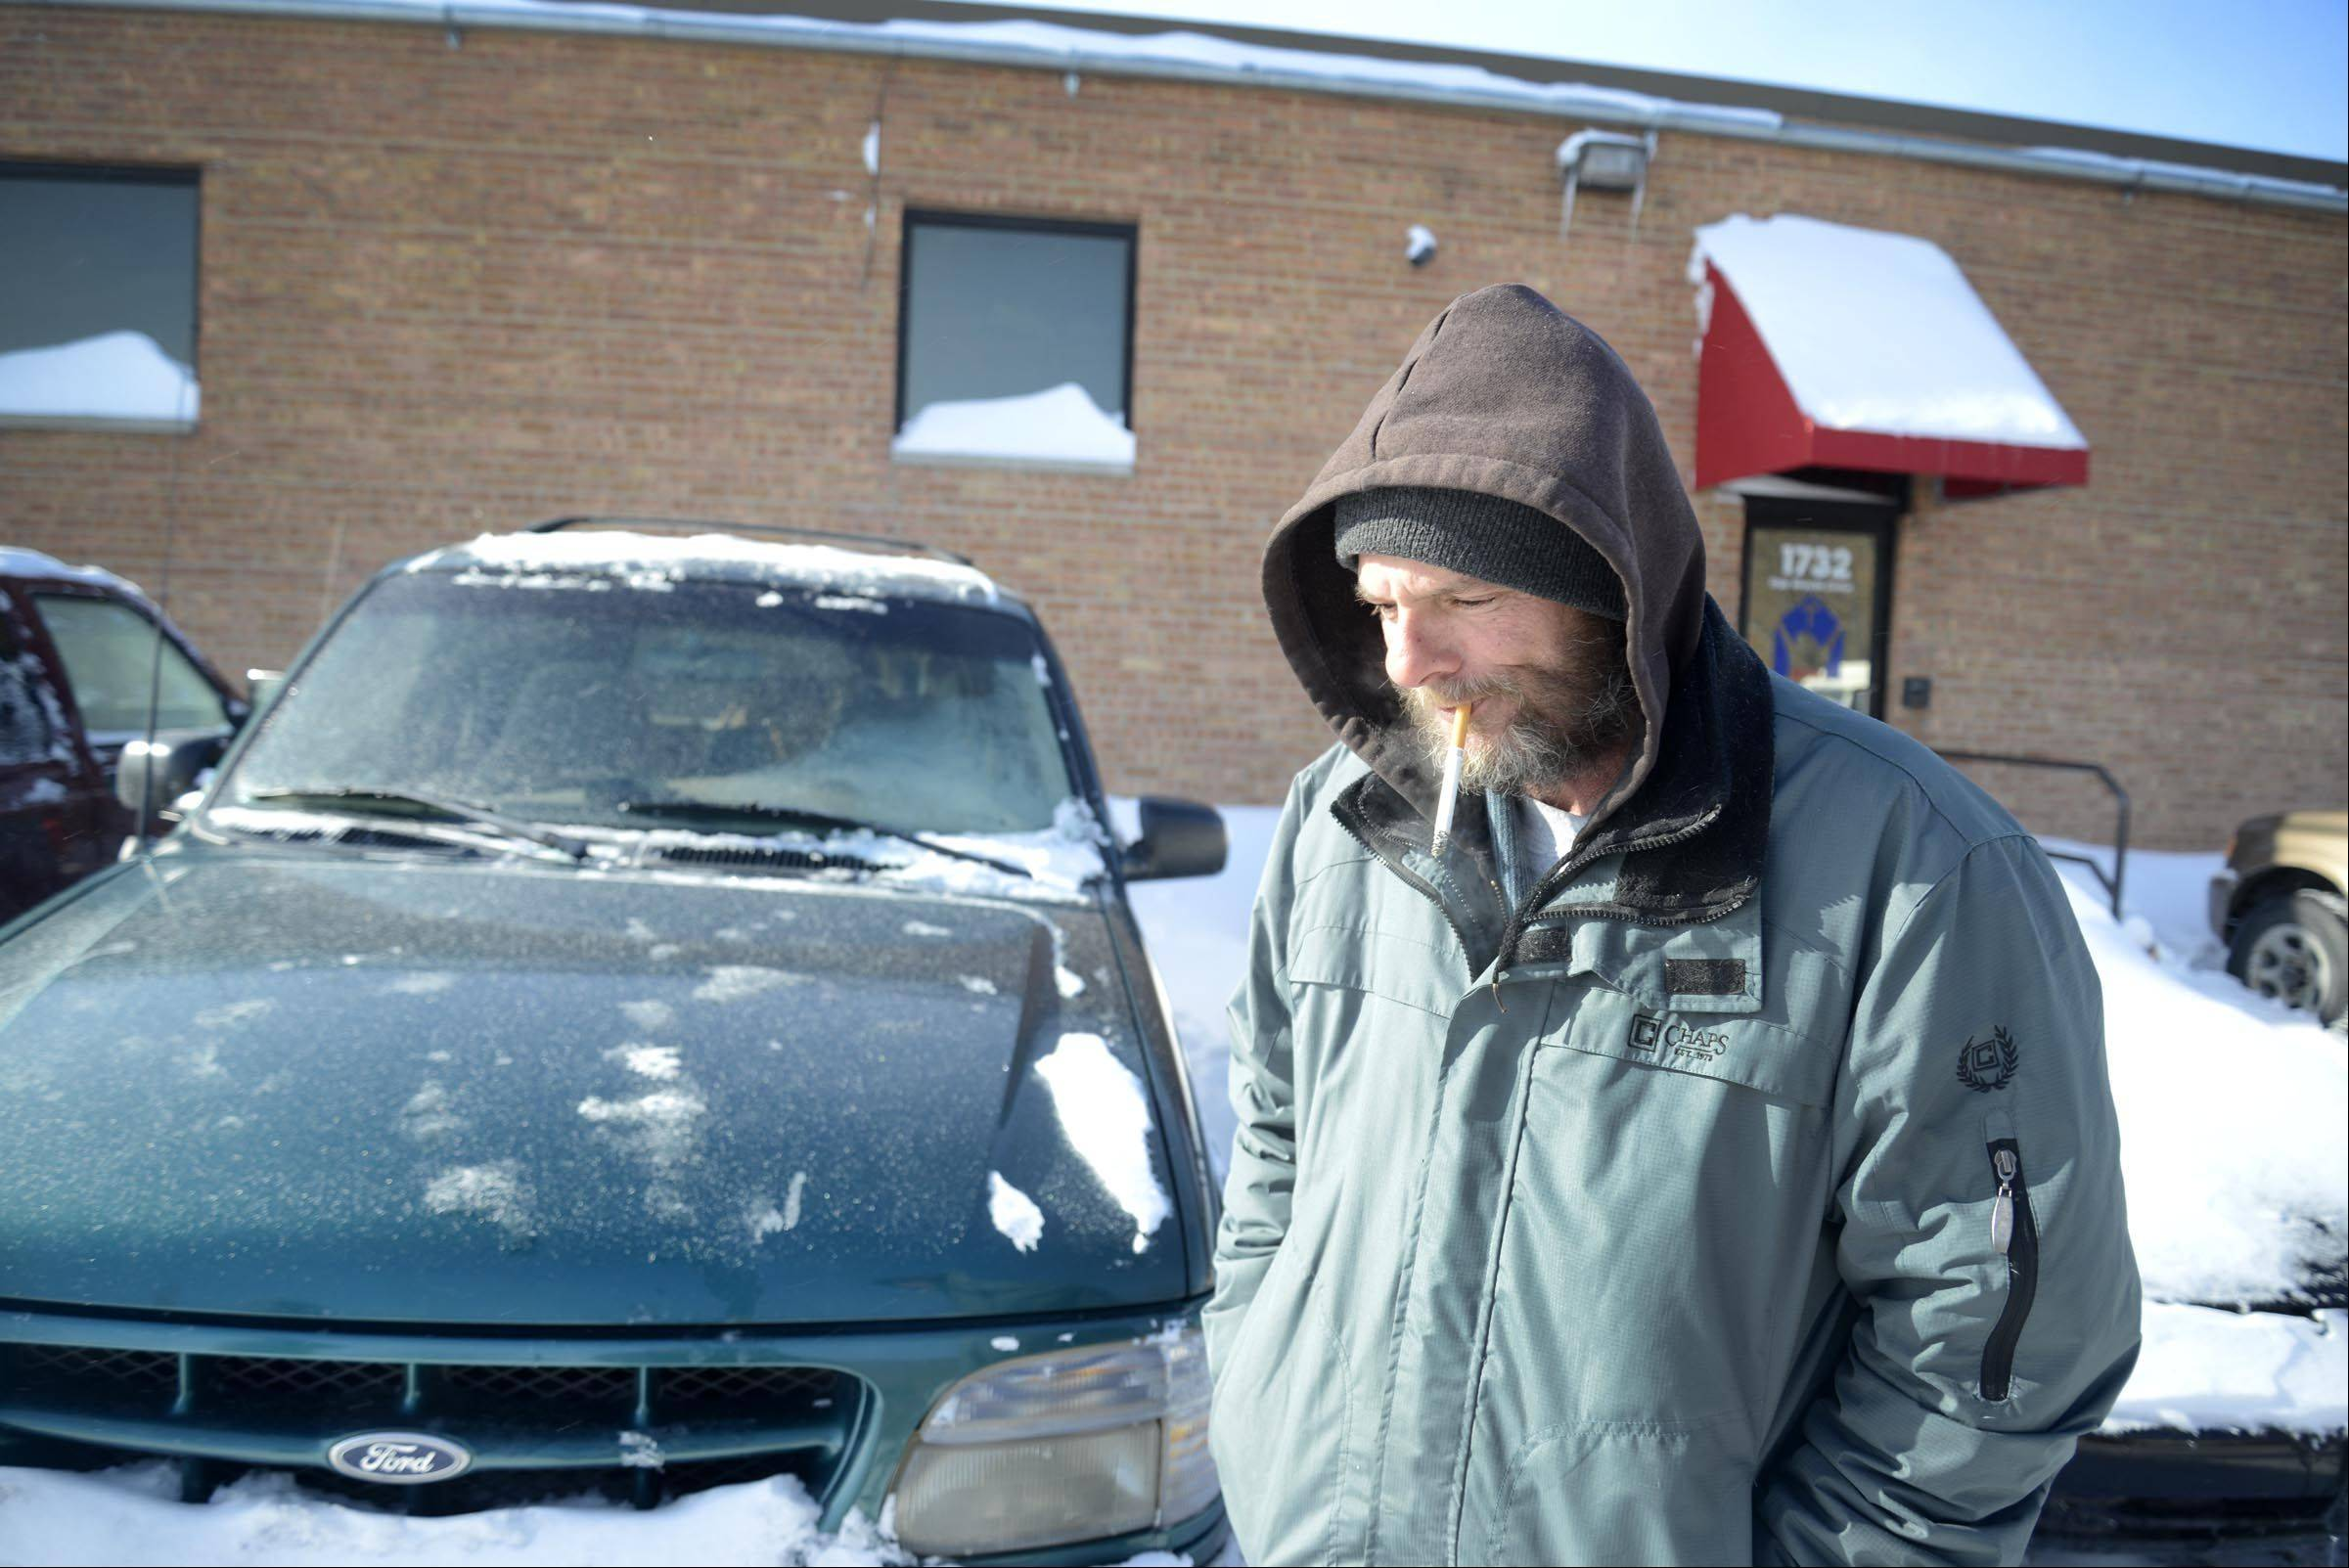 Tom, 53, spent Monday at The Wayside Center in Elgin. The center serves meals for the homeless, and they can sleep in the adjoining PADS shelter. On warmer days he sleeps in his 1998 SUV with his dog.